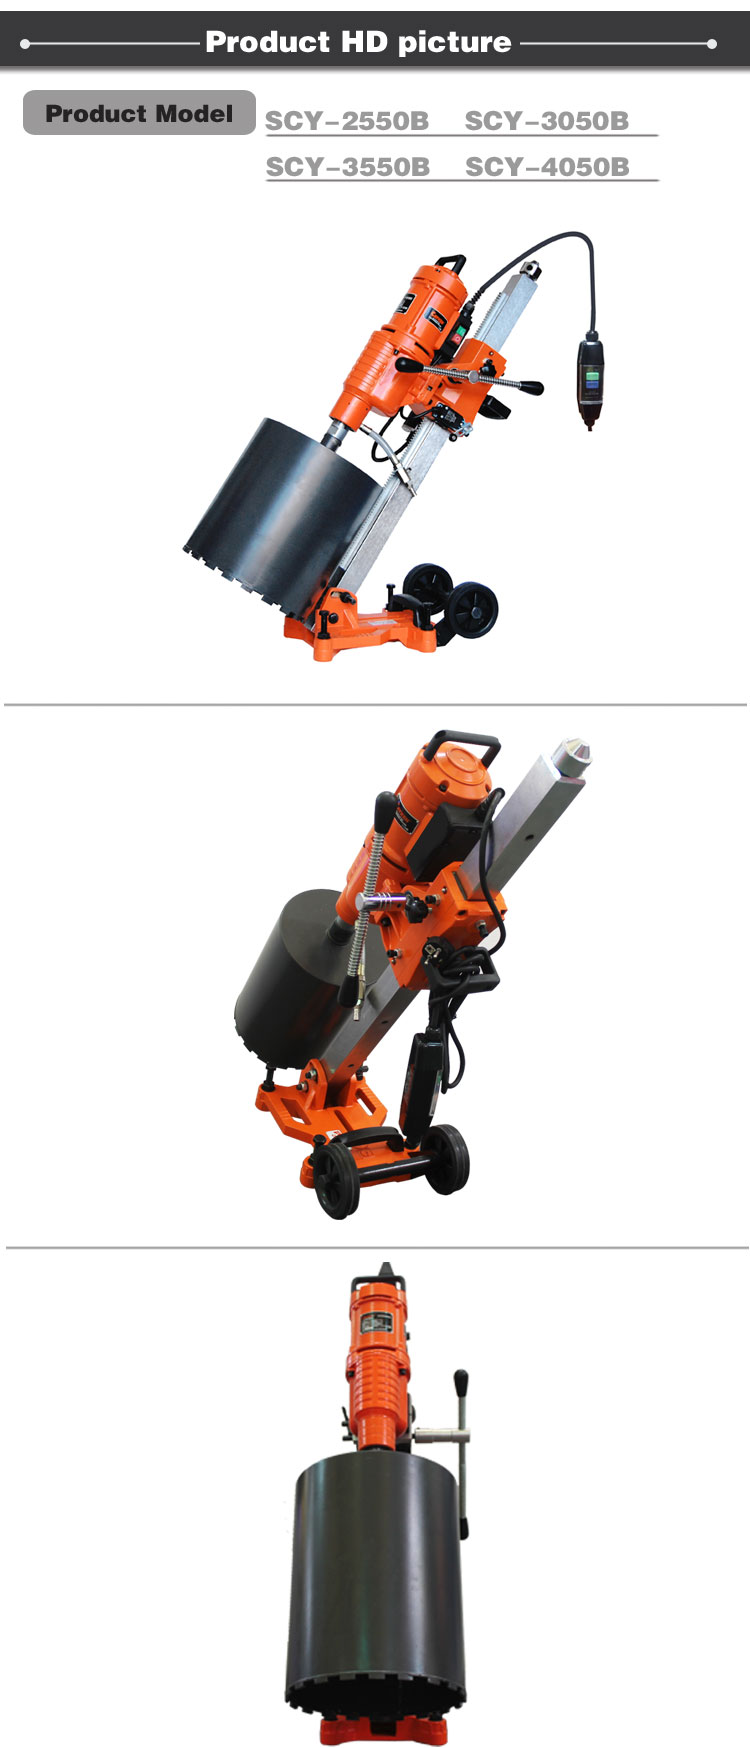 CAYKEN SCY-4050B 405mm concrete road cutter